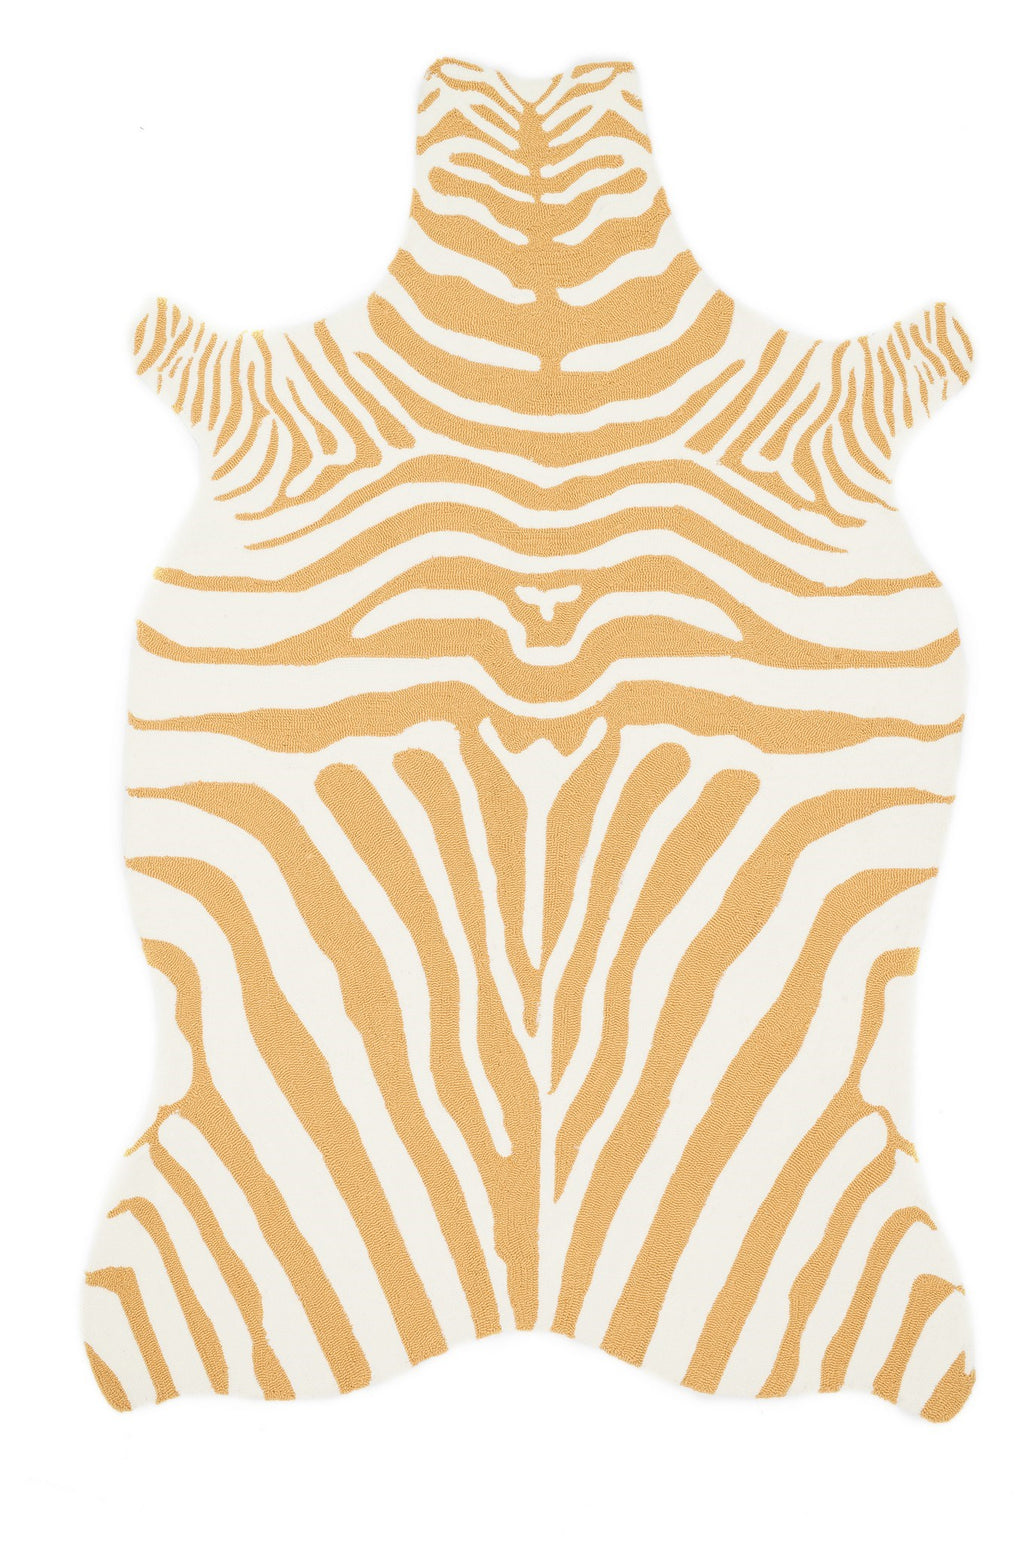 Wild Ones - 33 Gold / White - WORLD OF RUGS